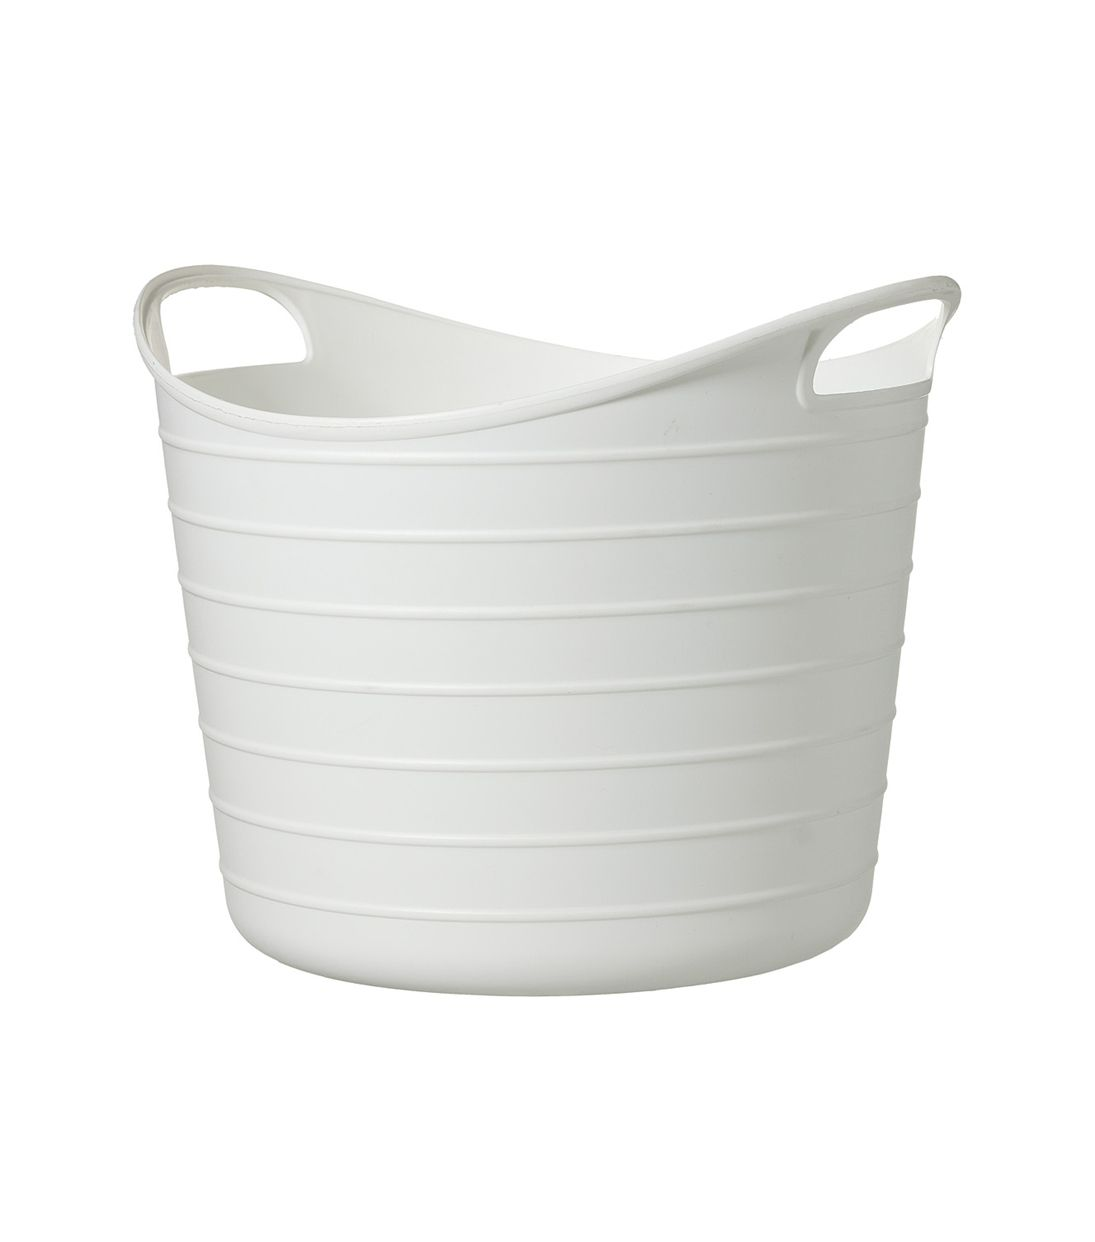 Wasmand Rek Free Plastic Bucket From Hema Use For Soaking With Hema